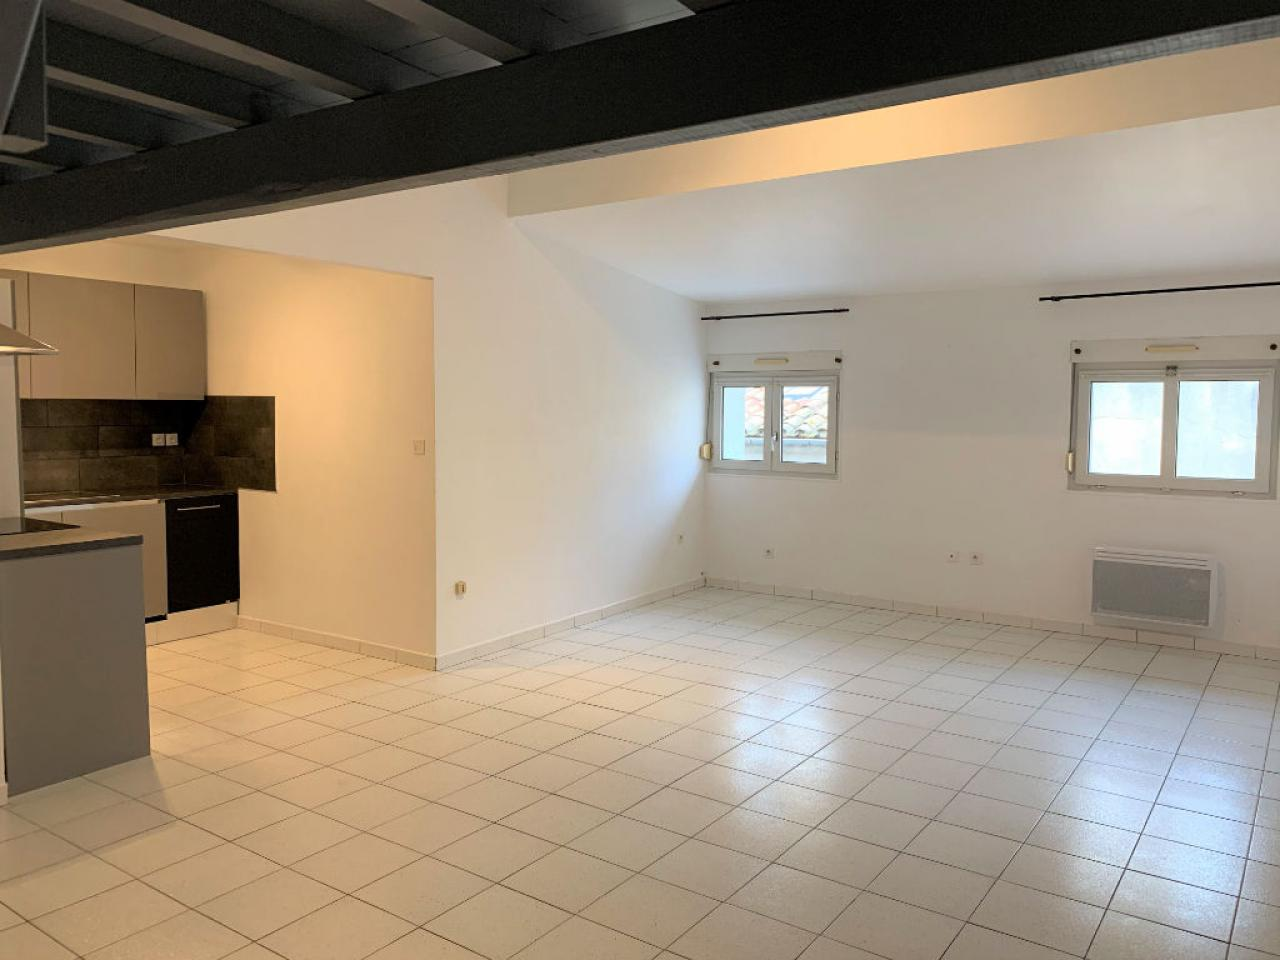 Apartment CARCASSONNE | 550 € / month